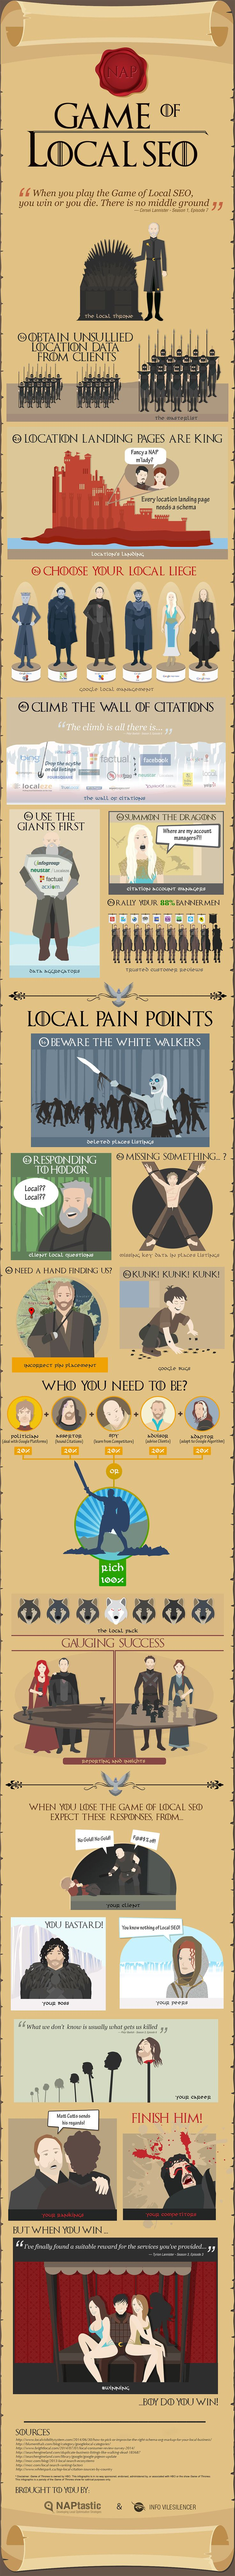 Game of Local SEO Infographic. a mash up between Game of Thrones and Local SEO